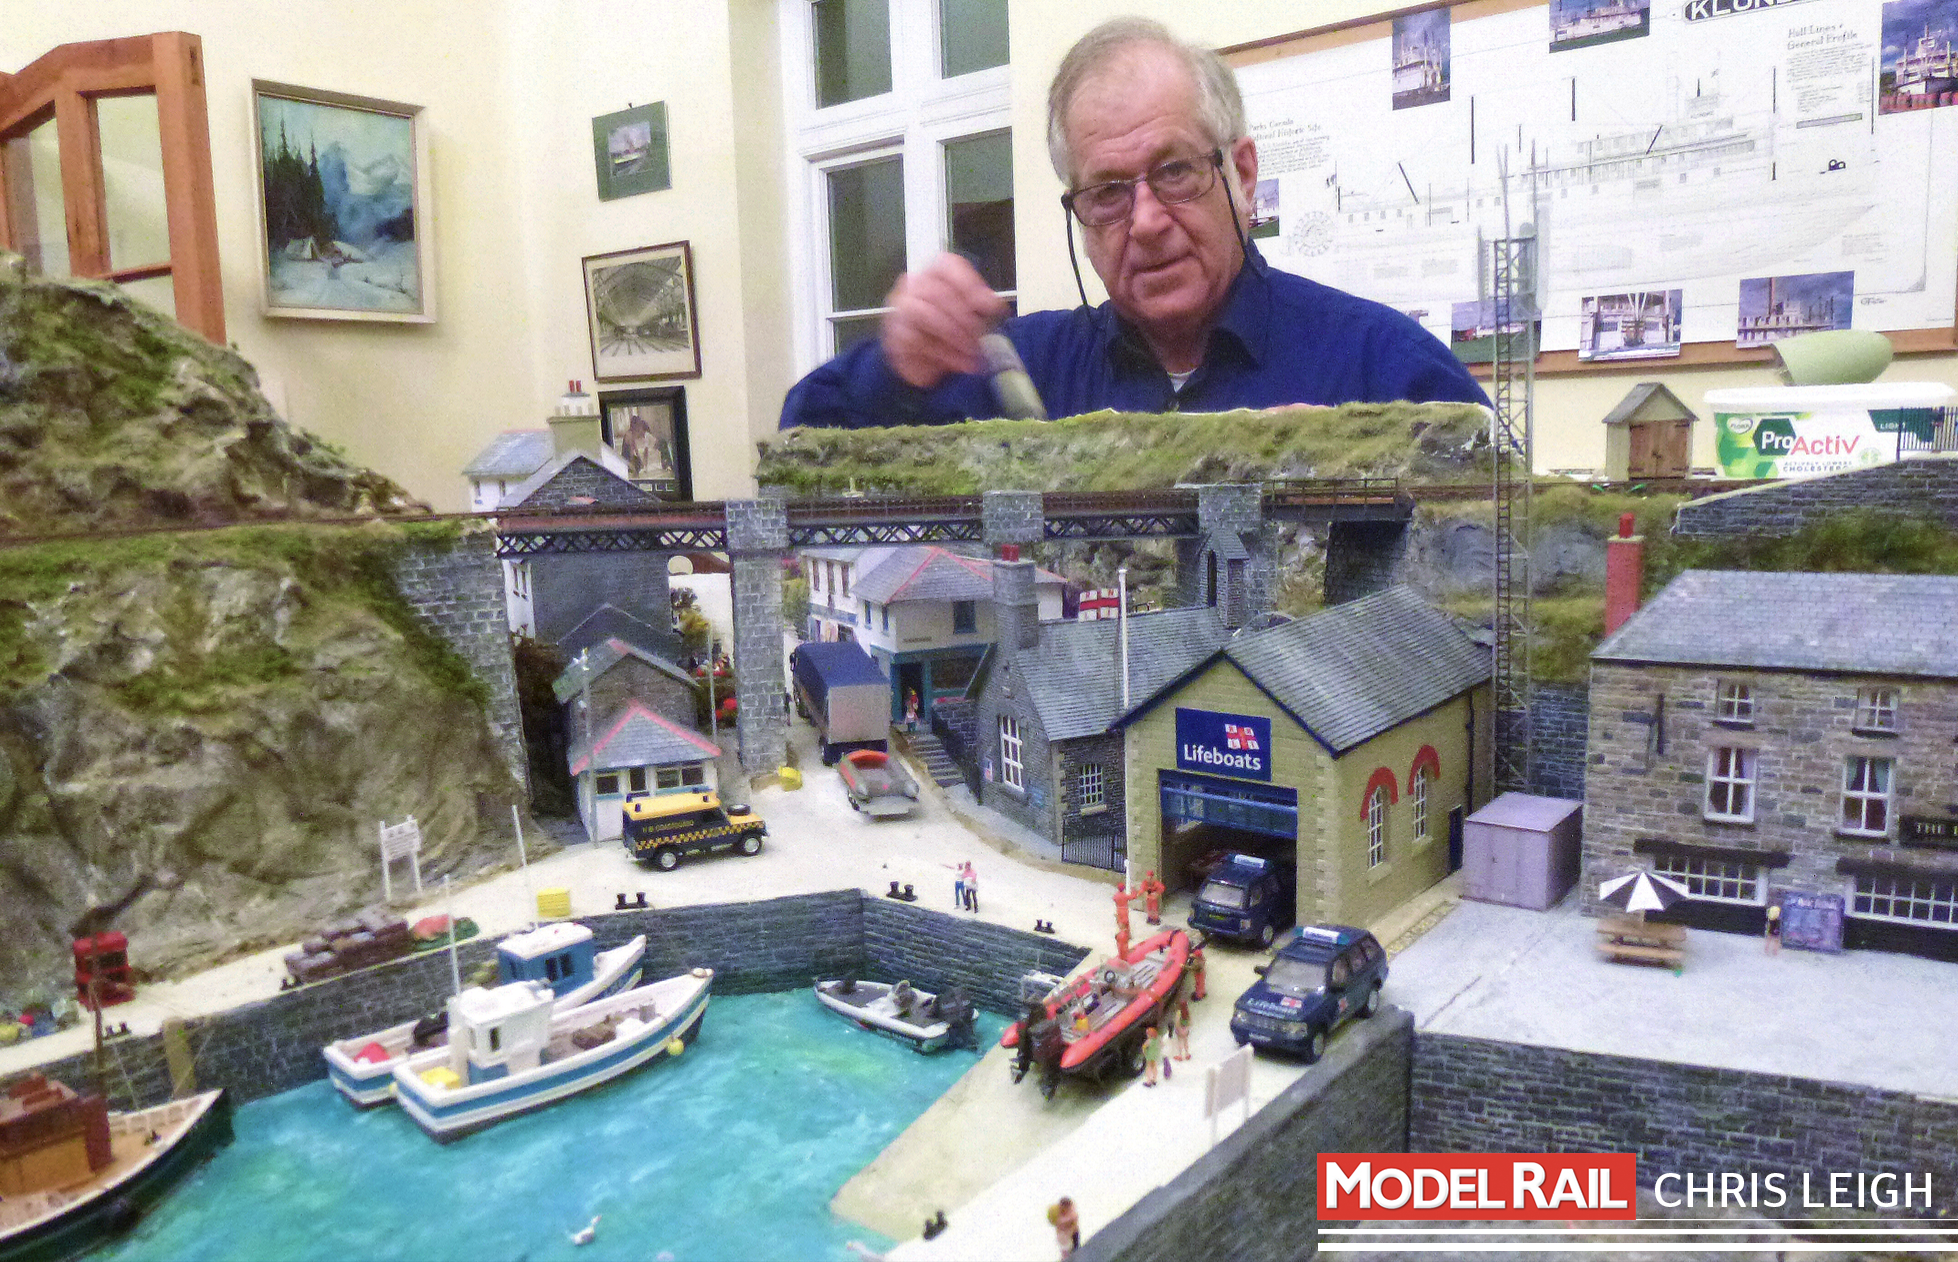 After a short break to recharge his Cornish seaside batteries, Chris is back to modelling 'Polwyddelan'. CHRIS LEIGH